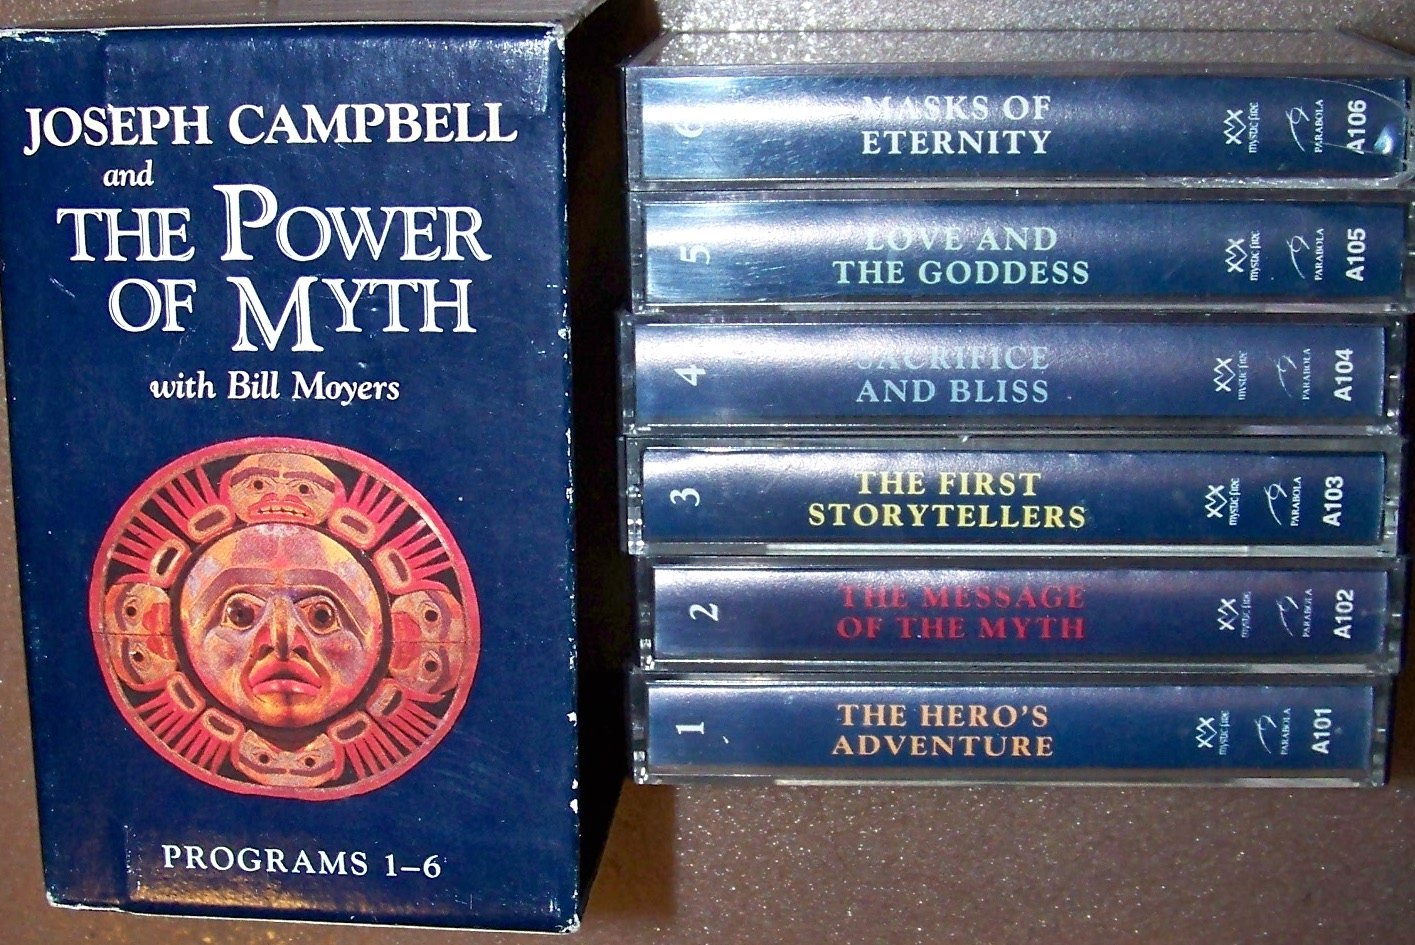 the power of myth joseph campbell with bill moyers 6 one hour cassettes